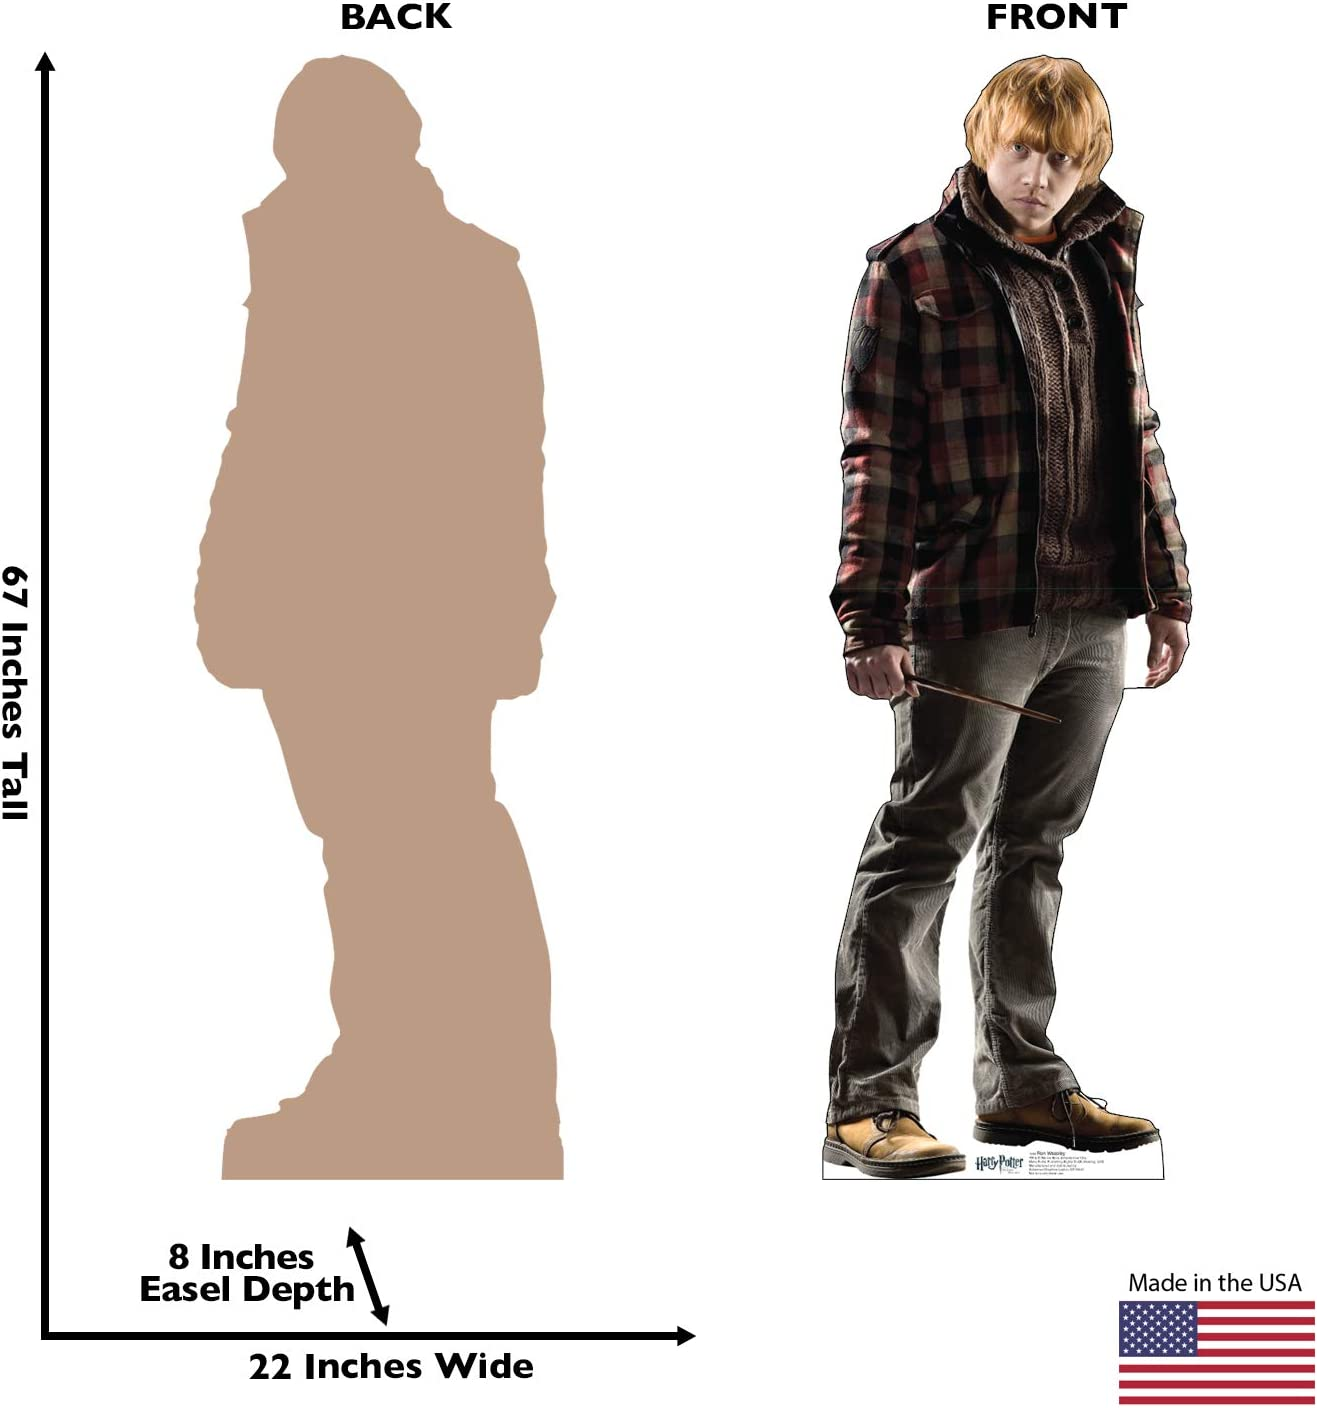 Harry Potter and The Deathly Hallows Advanced Graphics Ron Weasley Life Size Cardboard Cutout Standup